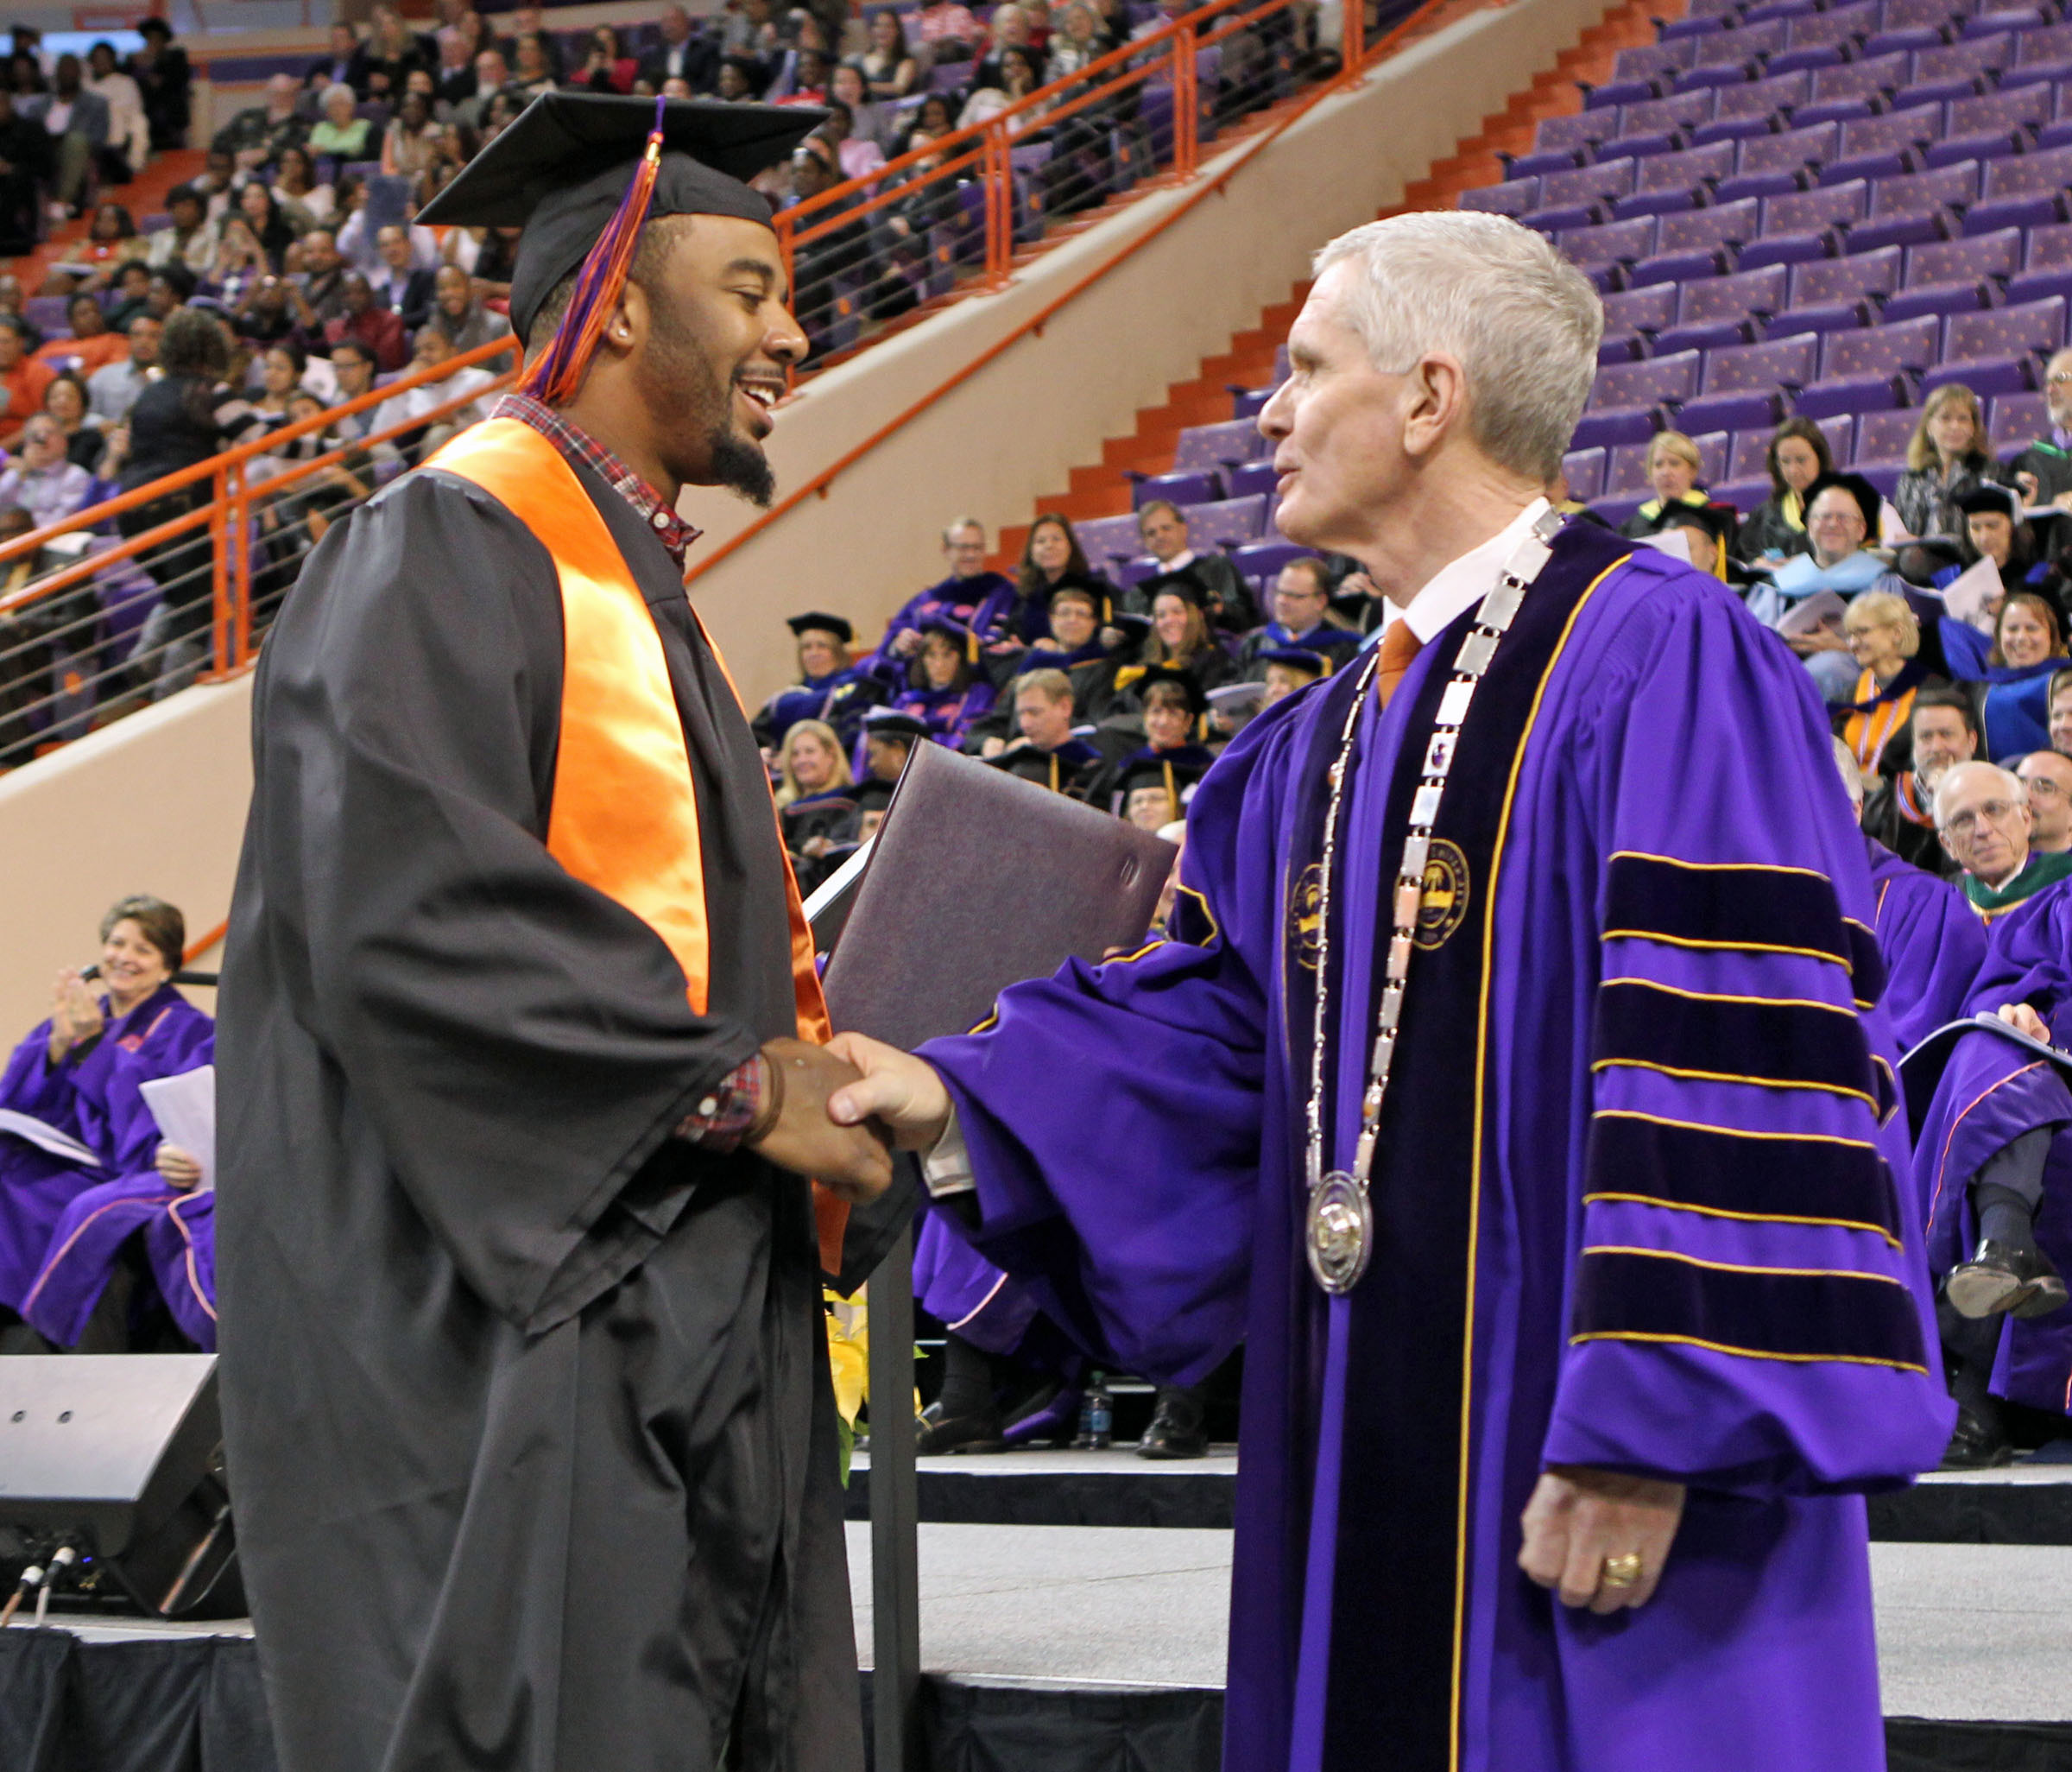 Clemson NCAA college football quarterback Tajh Boyd, left, shakes hands with Clemson University President James F. Barker after receiving his degree in sociology during commencement ceremonies at Littlejohn Coliseum in Clemson, S.C. on Thursday, Dec. 19, 2013